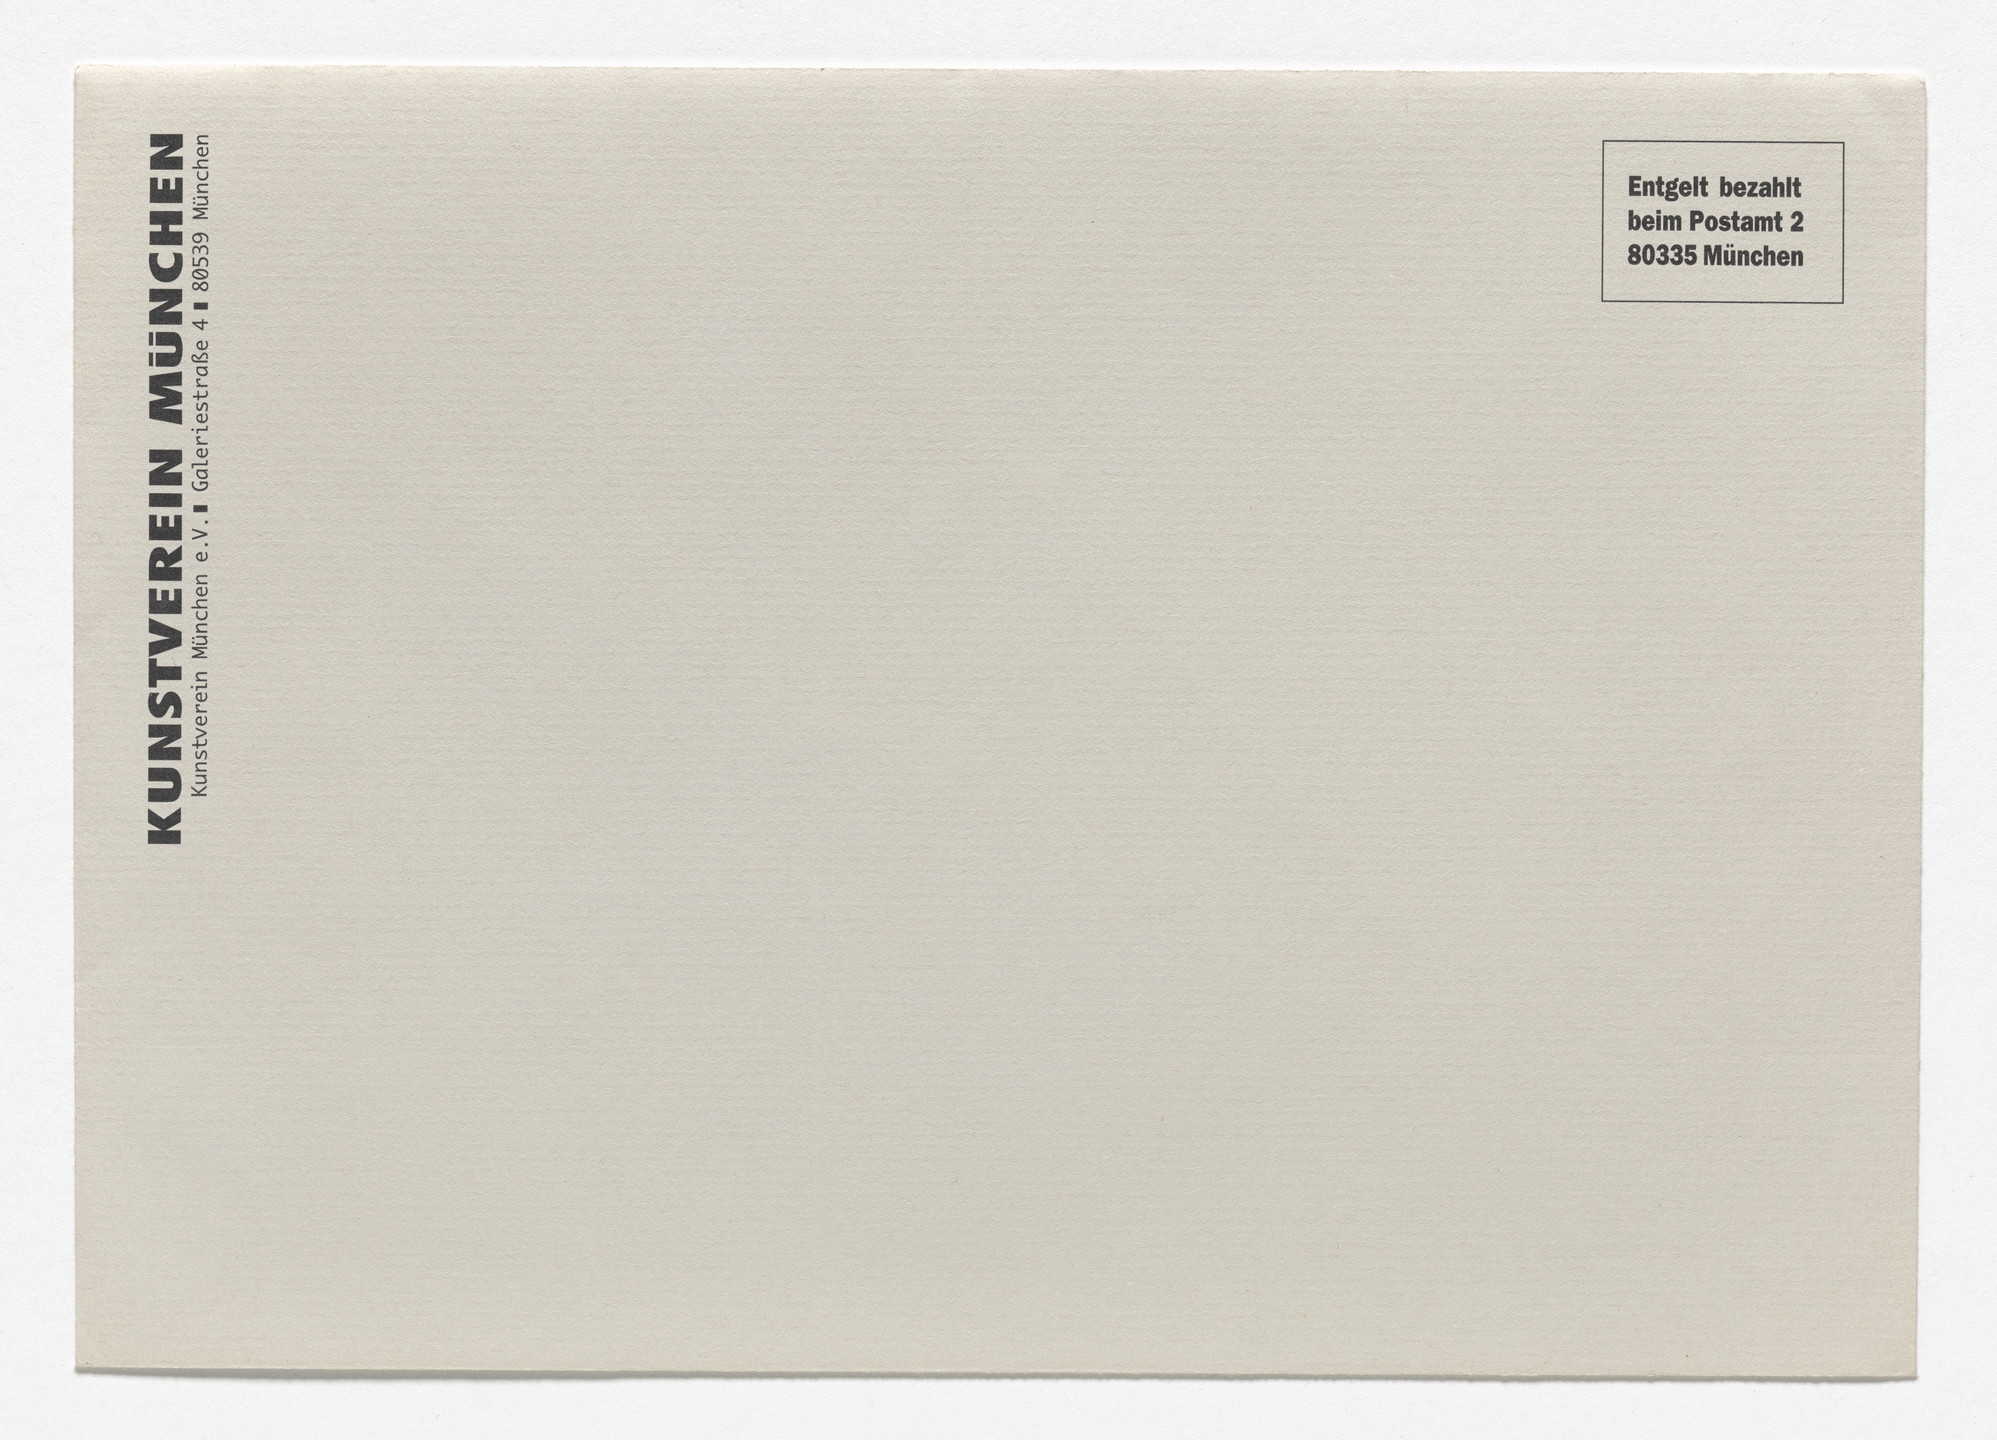 Louise Lawler. Announcement card for A Spot on the Wall, Kunstverein, Munich, March 16–April 23, 1995. 1995